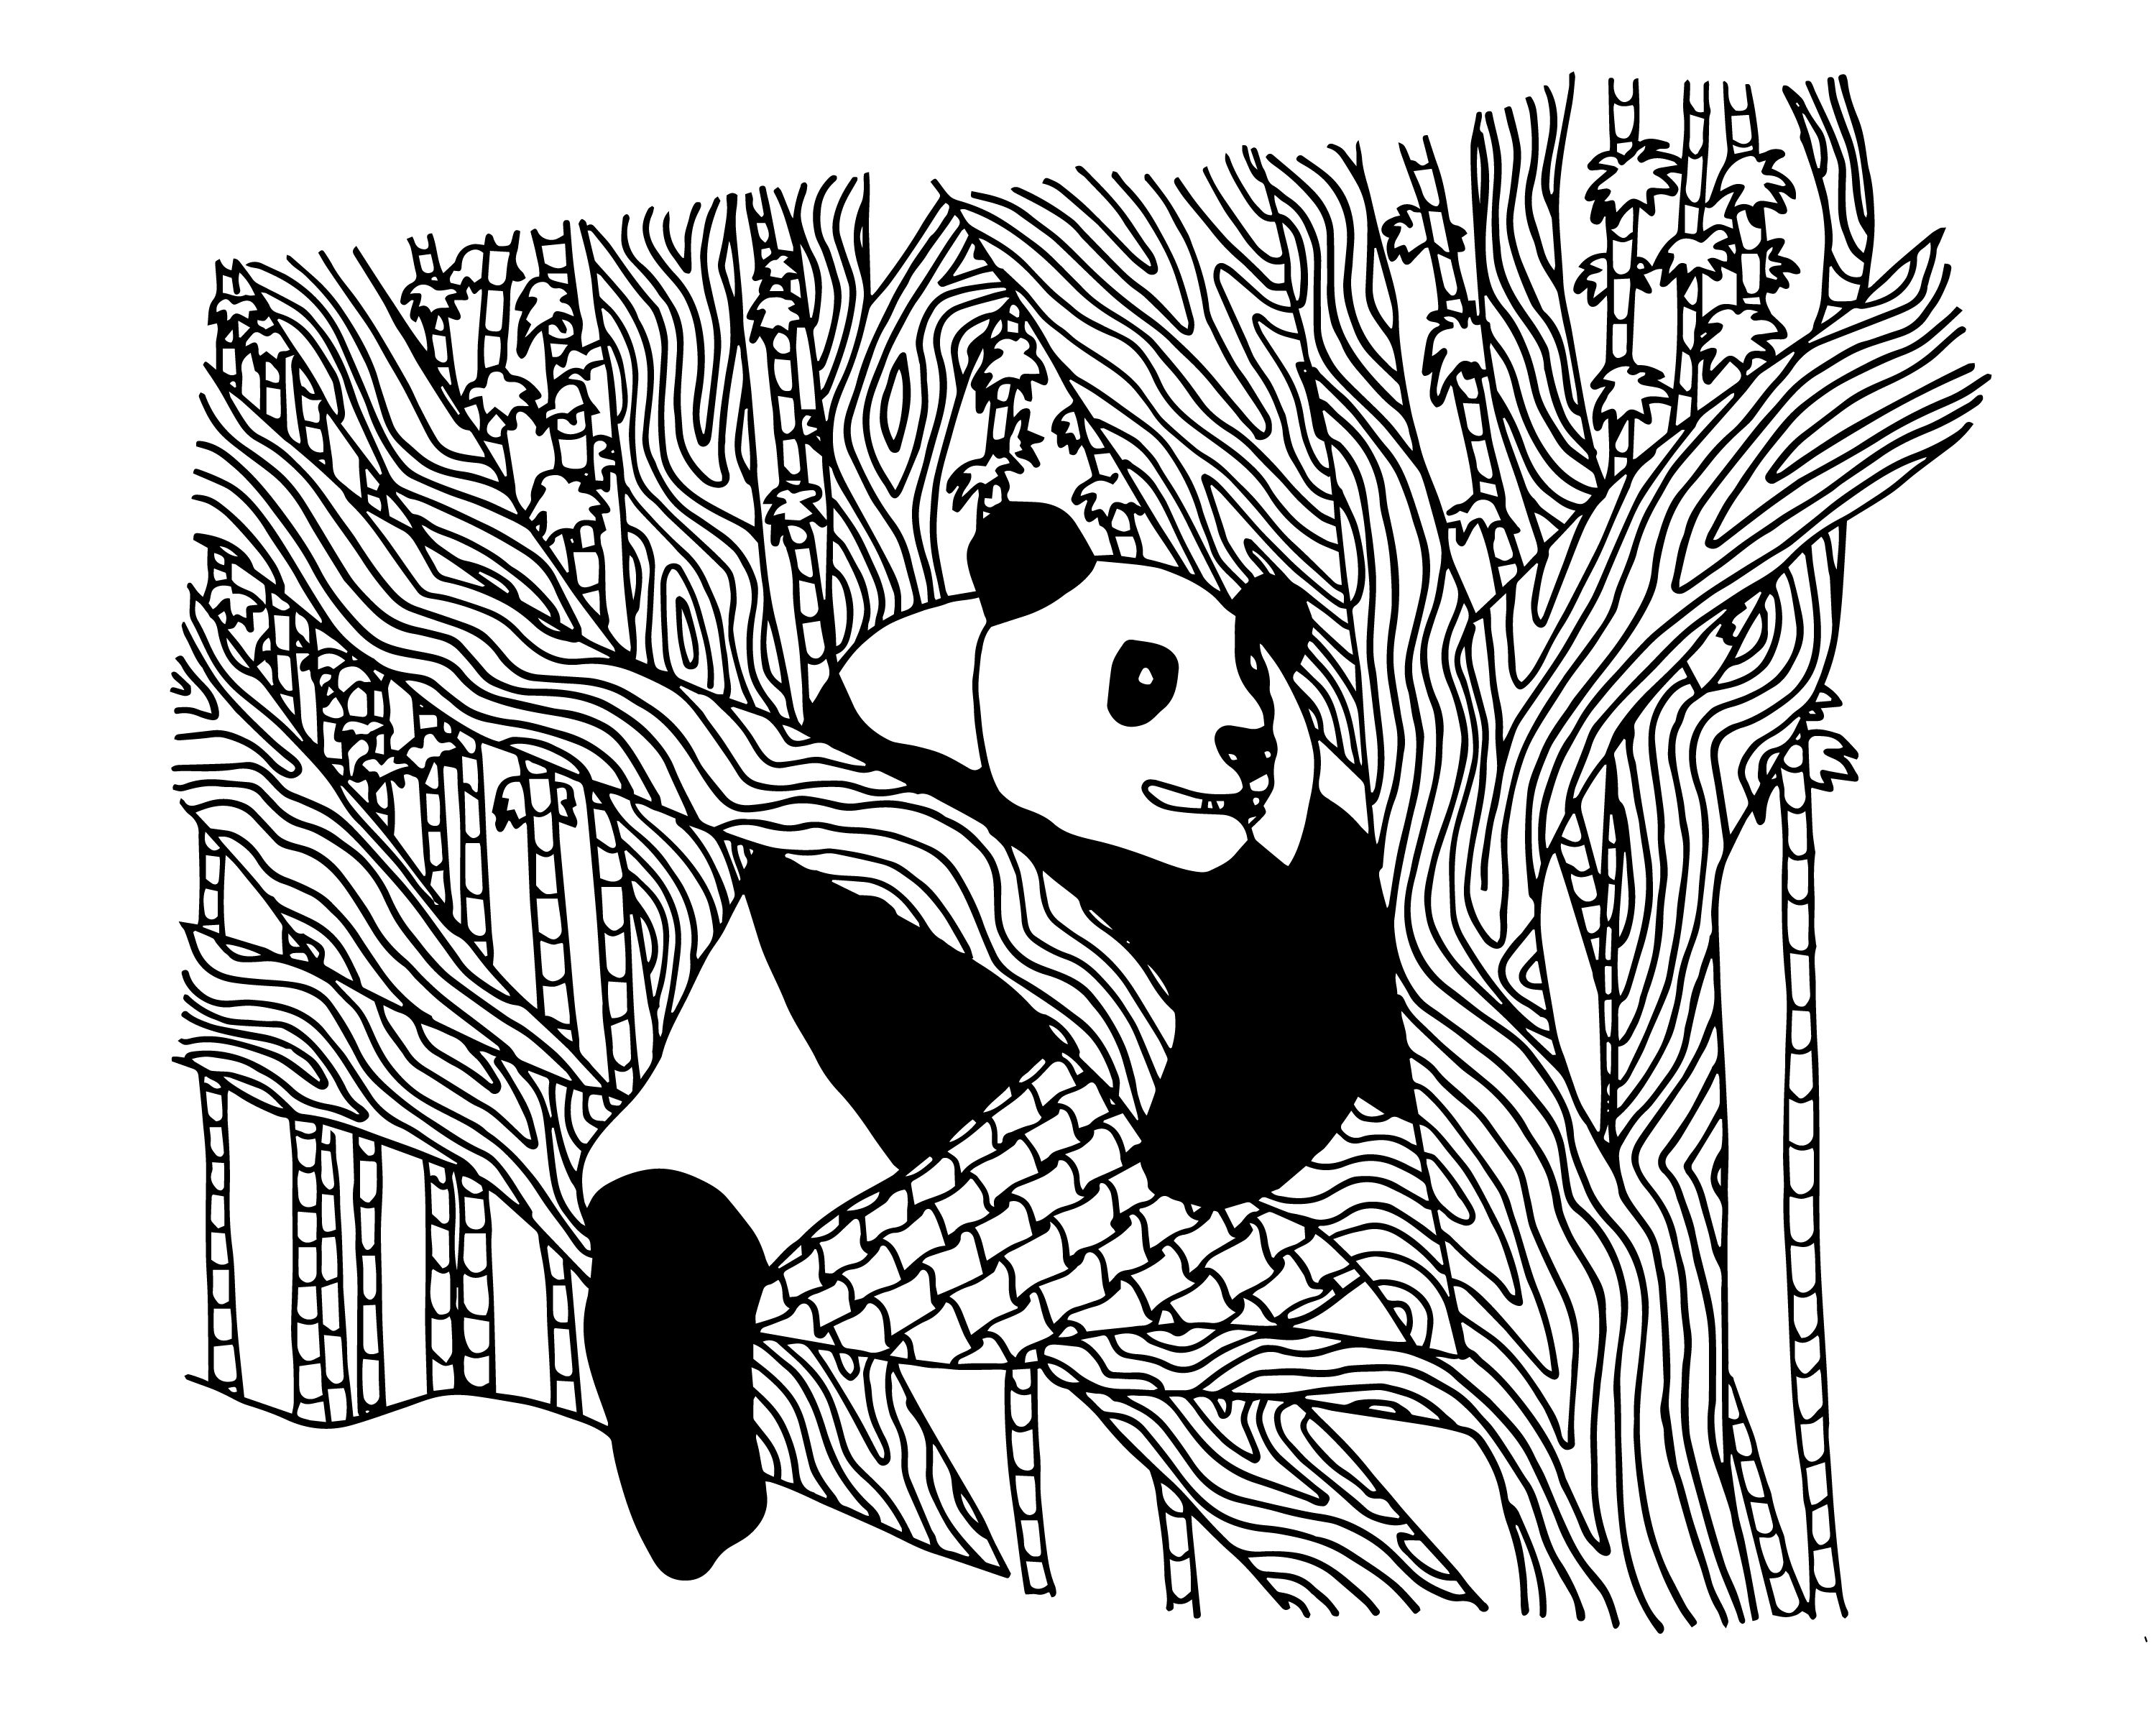 Free Panda Coloring Pages For Adults Free Printable Coloring